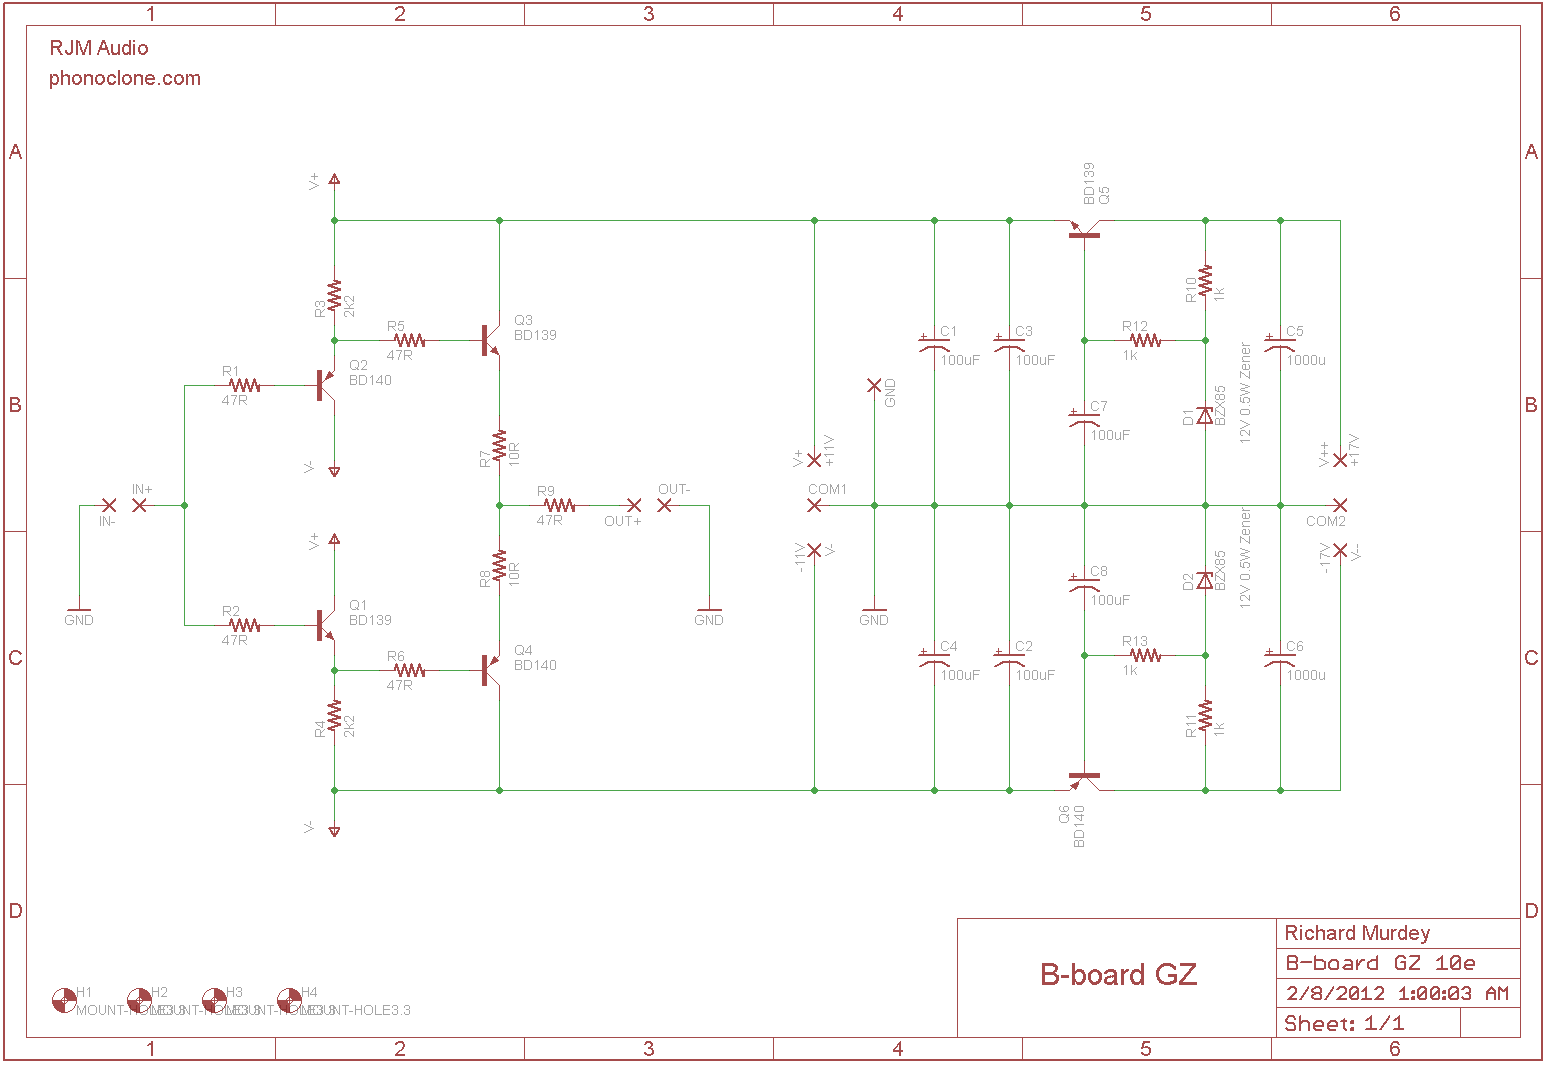 New Circuits Page 99 Ic Cs209a Metal Detector Circuit Diagram Home Made Electronic A Community Dedicated To Helping Everyone Learn The Art Of Audio Projects By Fanatics For